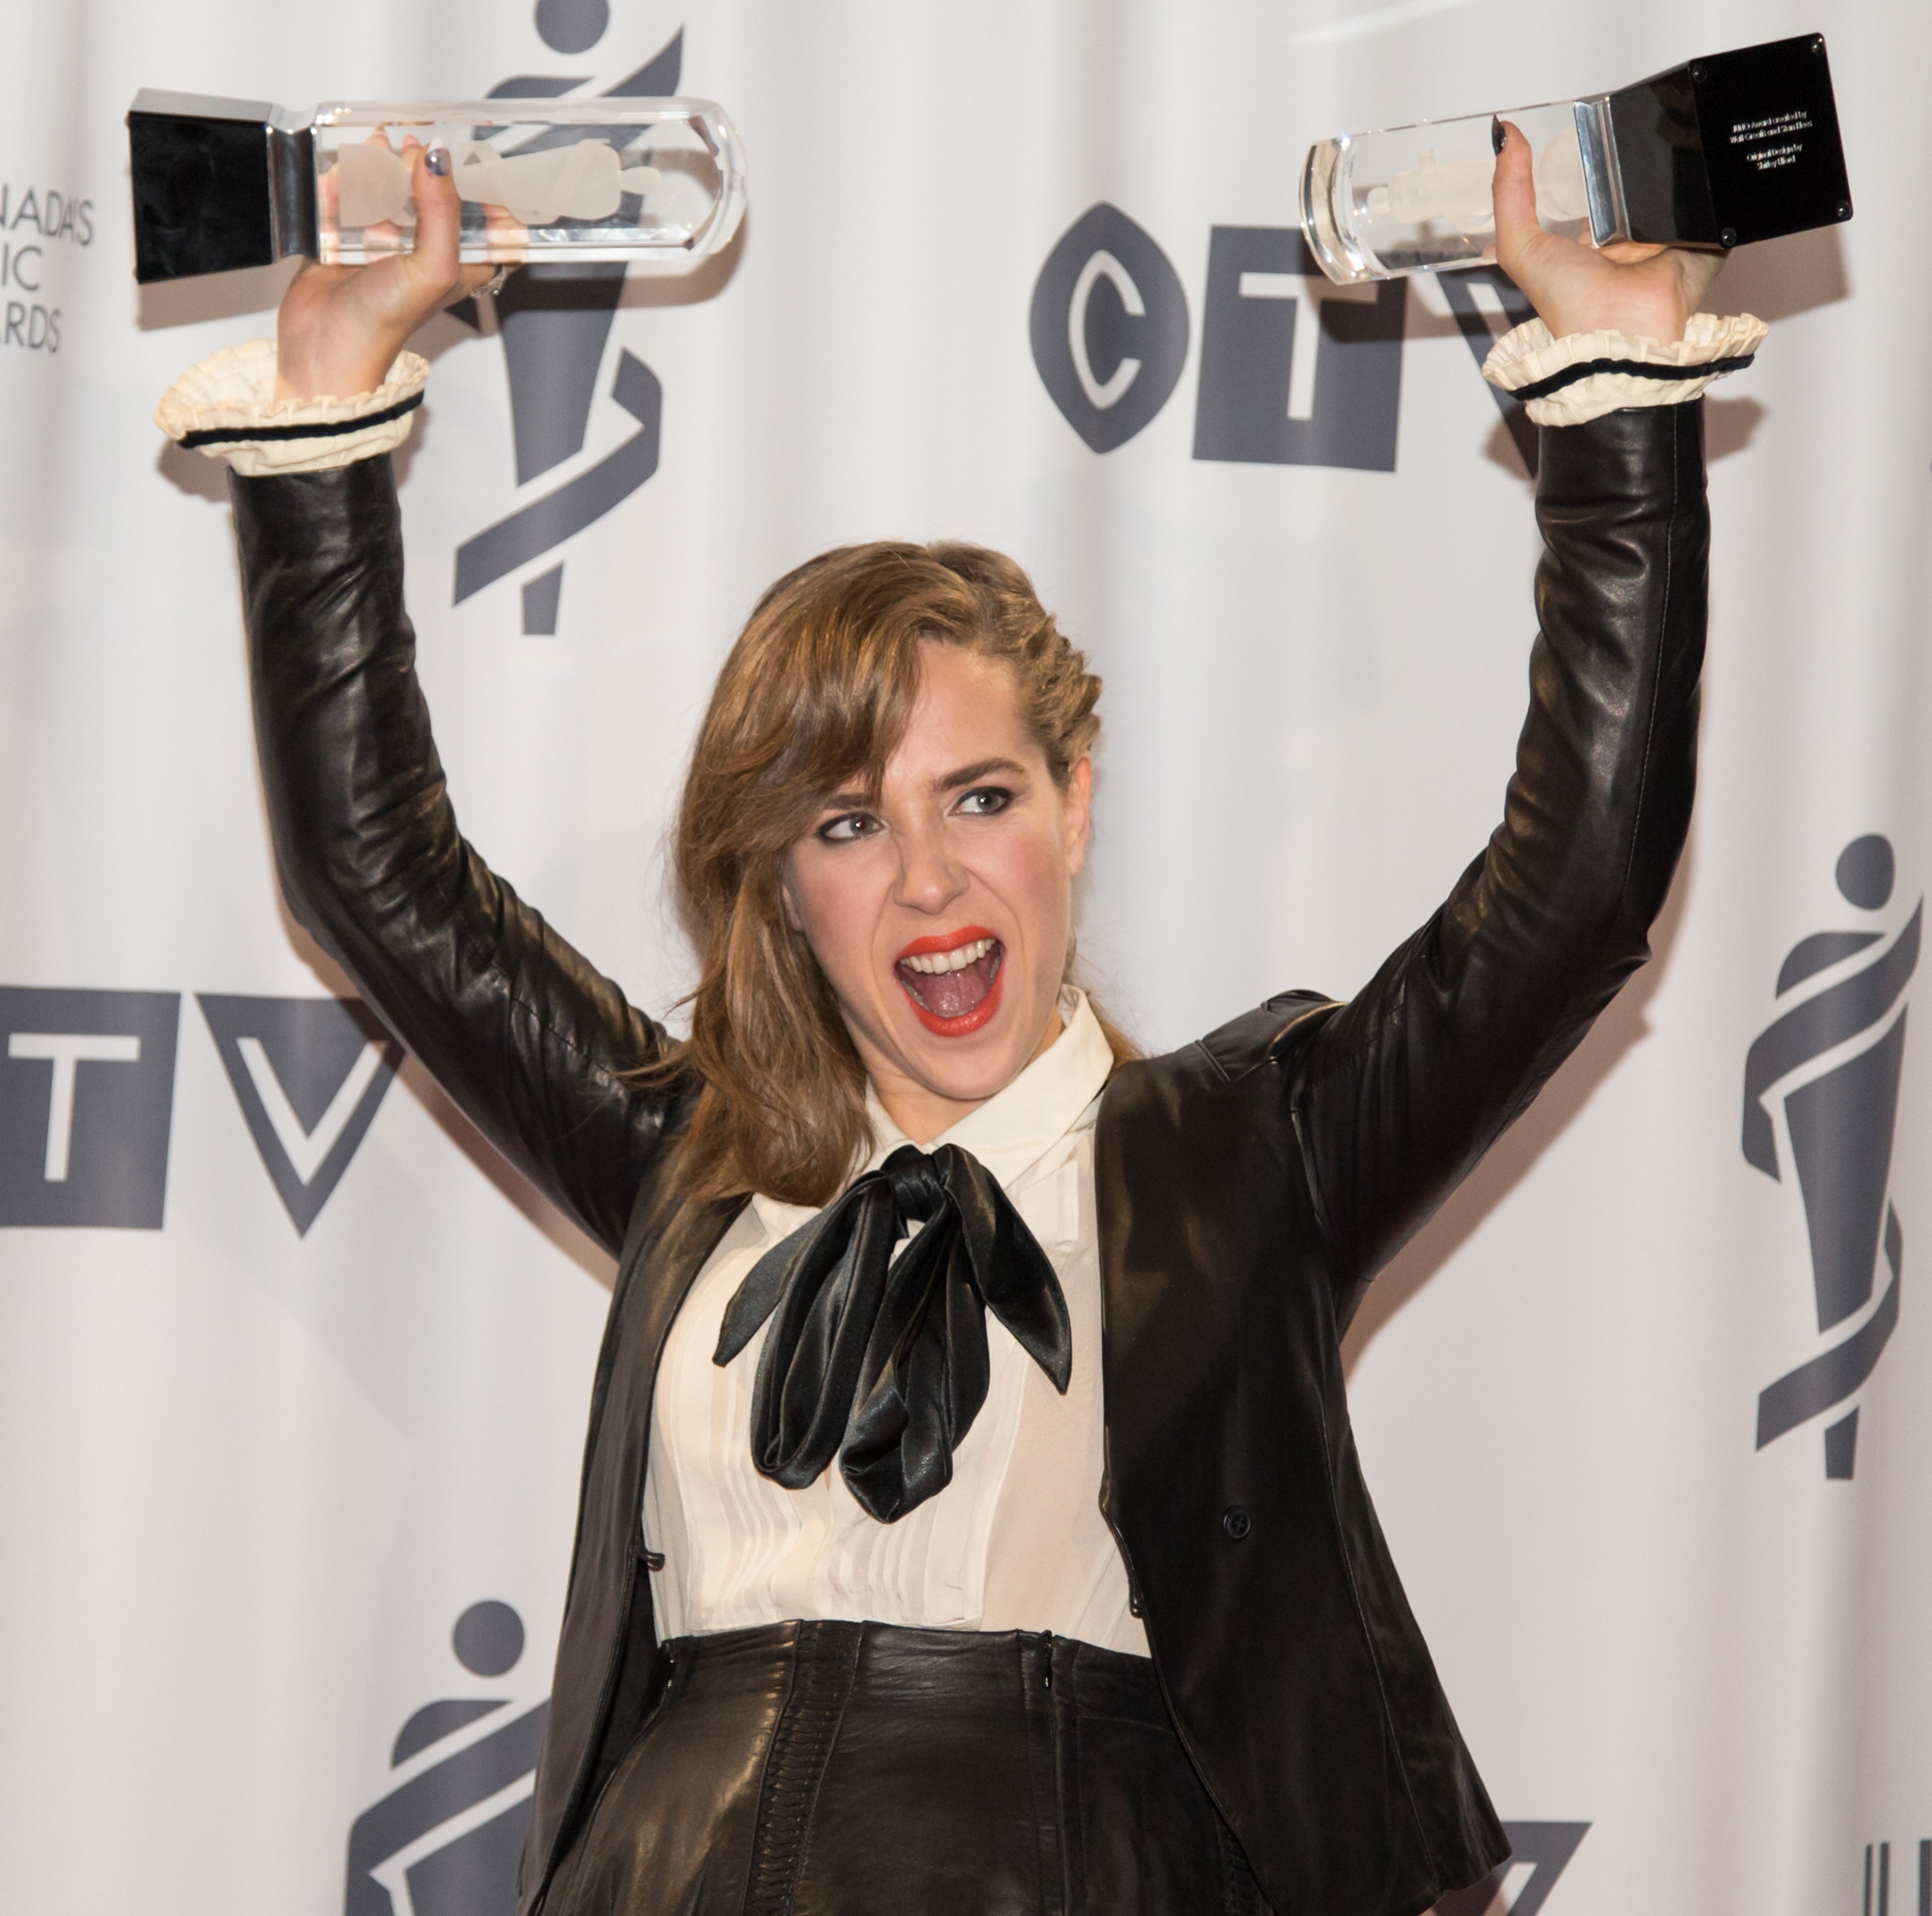 Serena Ryder with her two JUNOs, Songwriter of the Year and Artist of the Year, at the 2014 Juno Awards.